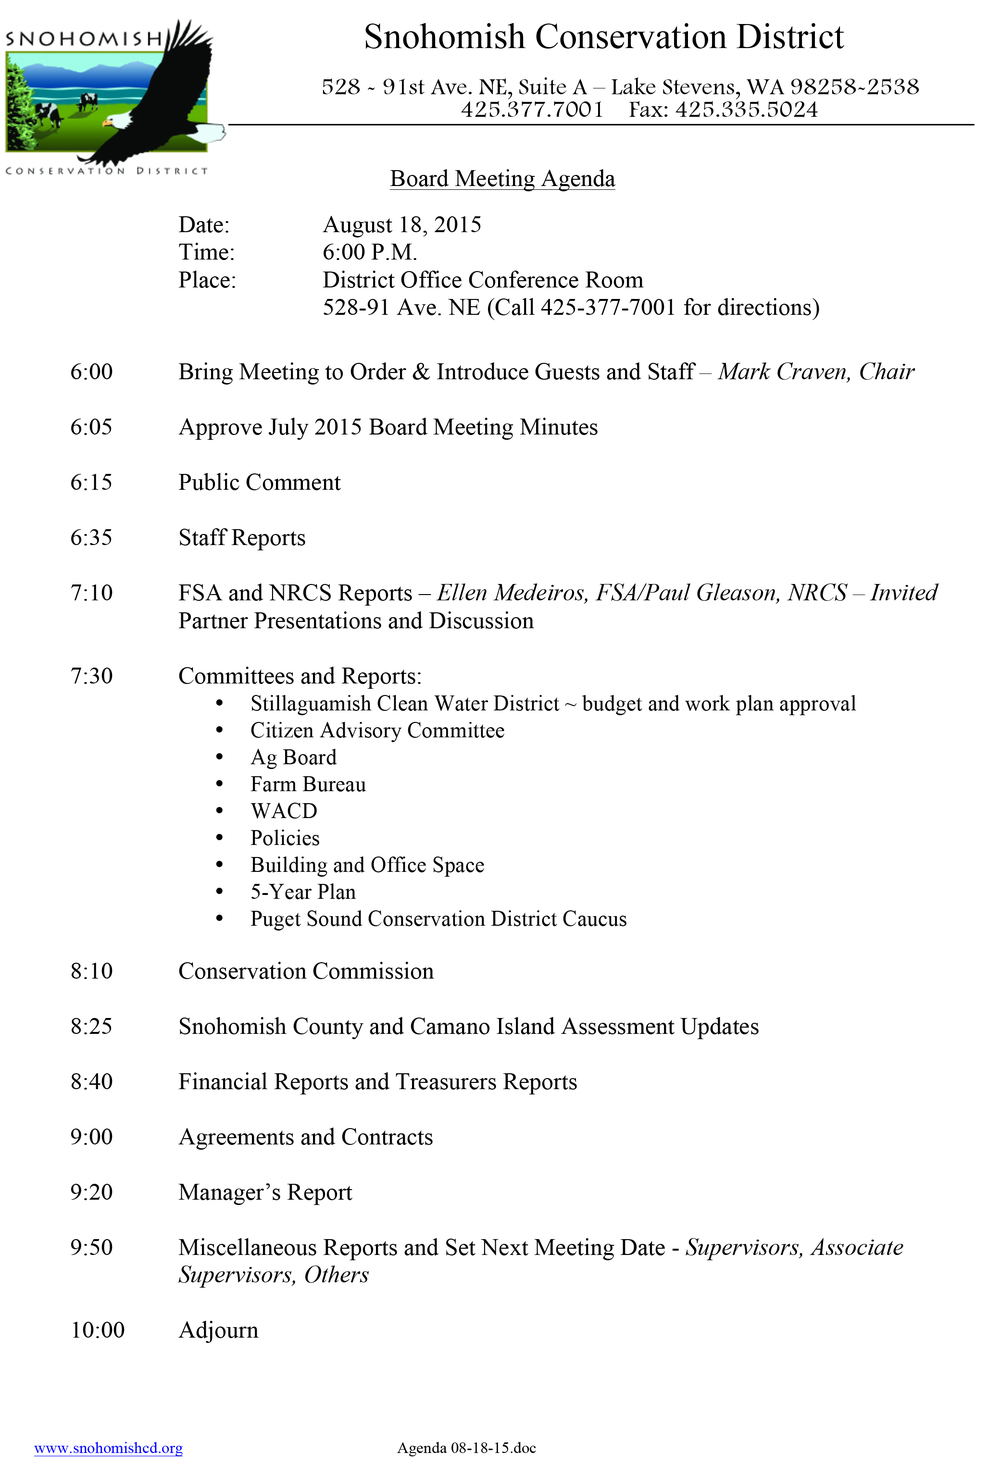 Image of Board Meeting Agenda Date:               August 18, 2015 Time:               6:00 P.M. Place:               District Office Conference Room | 528-91 Ave. NE (Call 425-377-7001 for directions) 6:00           Bring Meeting to Order & Introduce Guests and Staff – Mark Craven, Chair 6:05           Approve July 2015 Board Meeting Minutes 6:15           Public Comment 6:35           Staff Reports 7:10           FSA and NRCS Reports – Ellen Medeiros, FSA/Paul Gleason, NRCS – Invited Partner Presentations and Discussion 7:30           Committees and Reports: ·       Stillaguamish Clean Water District ~ budget and work plan approval ·       Citizen Advisory Committee ·       Ag Board ·       Farm Bureau ·       WACD ·       Policies ·       Building and Office Space ·       5-Year Plan ·       Puget Sound Conservation District Caucus  8:10           Conservation Commission 8:25           Snohomish County and Camano Island Assessment Updates 8:40           Financial Reports and Treasurers Reports 9:00           Agreements and Contracts 9:20           Manager's Report 9:50          Miscellaneous Reports and Set Next Meeting Date - Supervisors, Associate Supervisors, Others 10:00         Adjourn